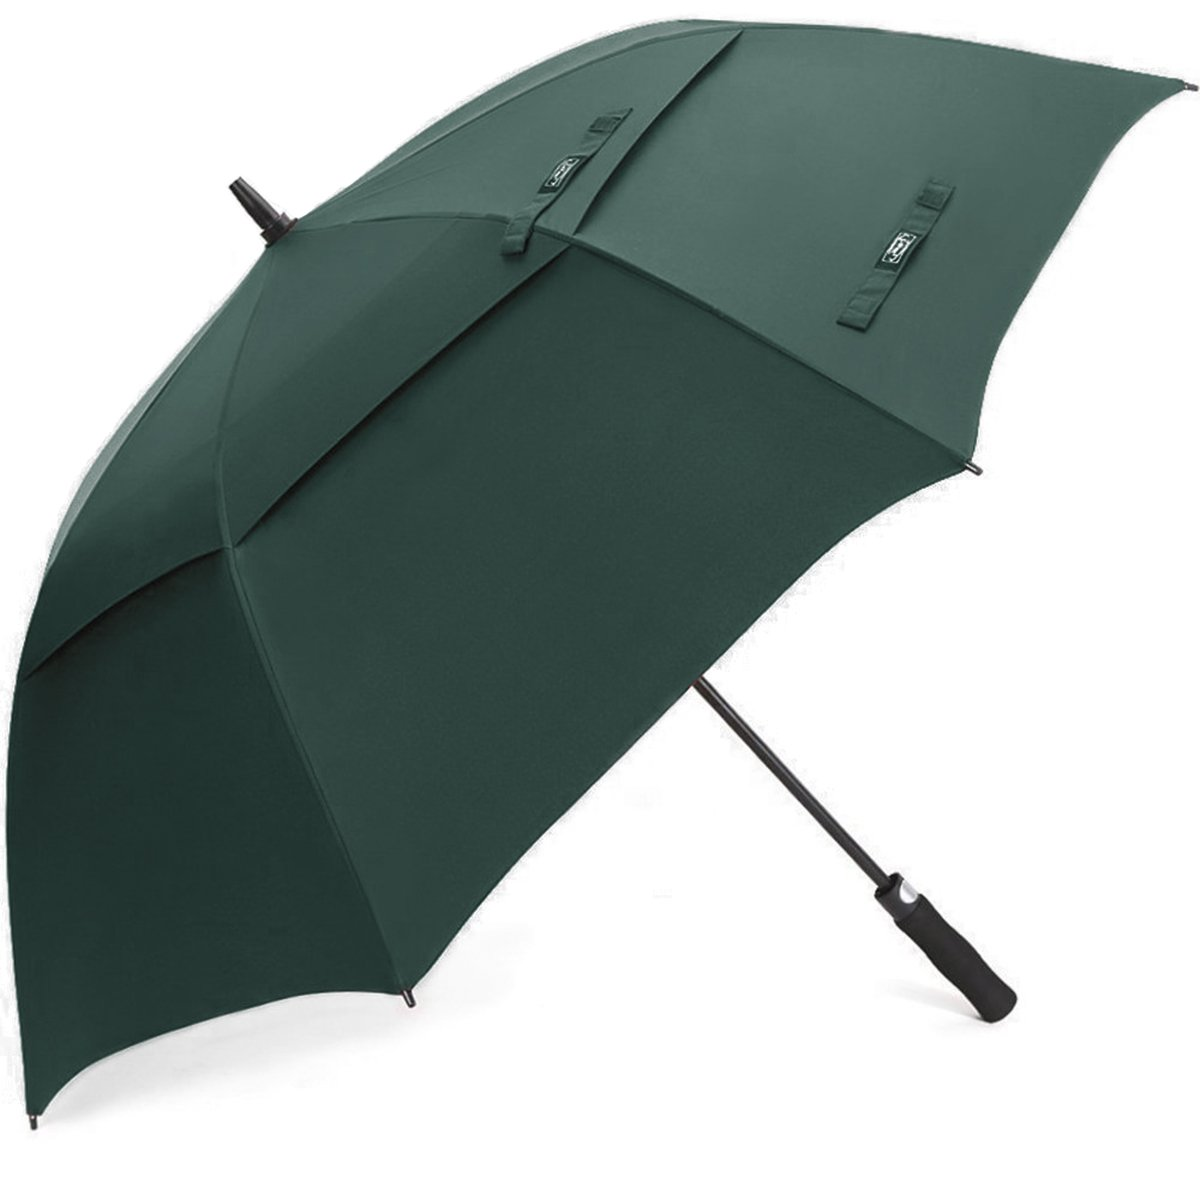 G4Free 62 inch Golf Umbrella Double-Canopy Large Oversize Rain Windproof Waterproof Automatic Collapsible Best for Men (Dark Green)